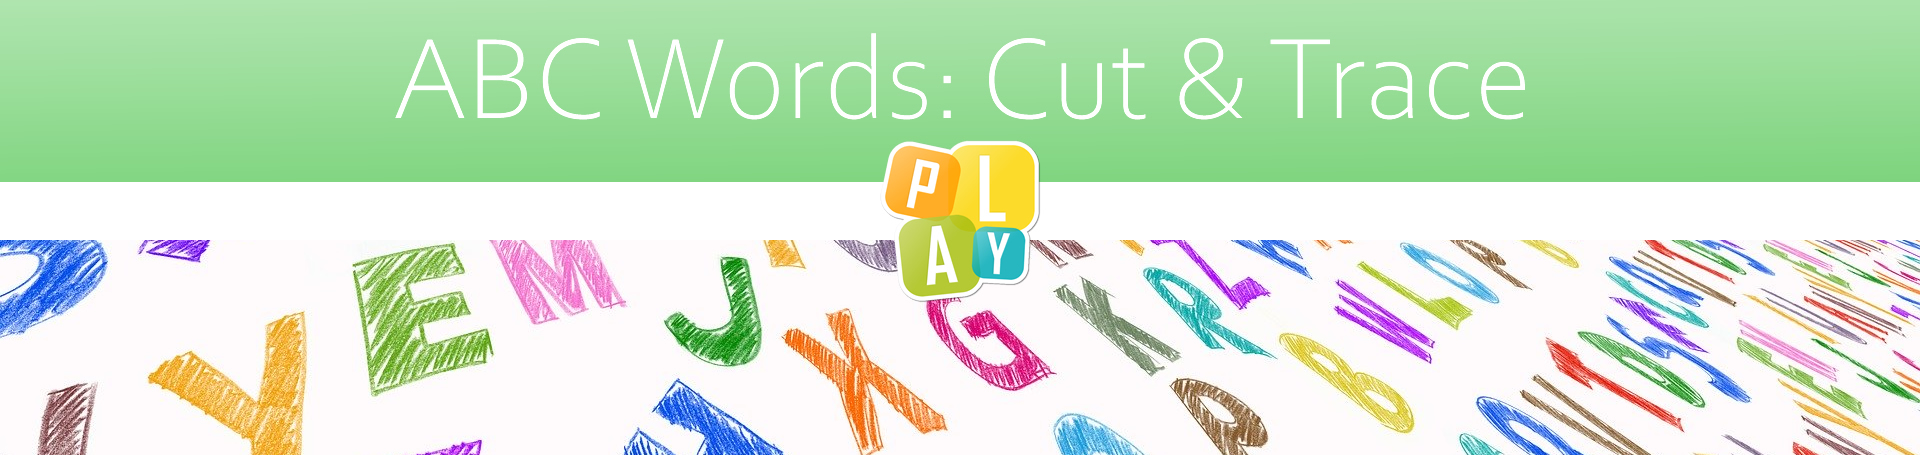 Header ABC Words Cut and Trace